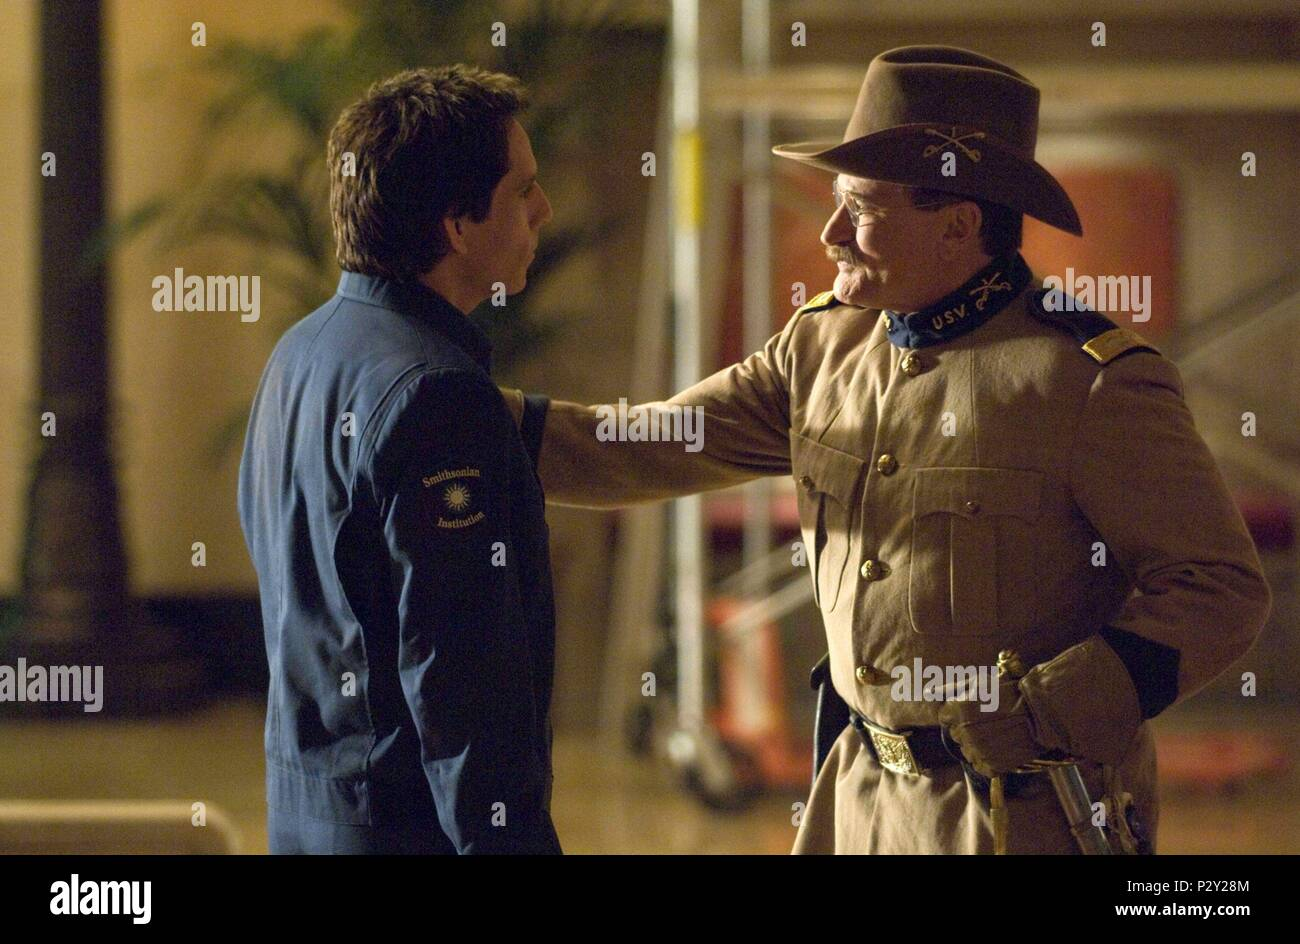 Description: RELEASE DATE: May 22, 2009 . MOVIE TITLE: Night at the Museum: Battle of the Smithsonian. STUDIO: Twentieth Century-Fox Films. PLOT: Security guard Larry Daley infiltrates the Smithsonian Institute in order to rescue Jedediah and Octavius, who have been shipped to the museum by mistake. PICTURED: BEN STILLER as Larry Daley and ROBIN WILLIAMS as Teddy Roosevelt..  Original Film Title: NIGHT AT THE MUSEUM: BATTLE OF THE SMITHSONIAN.  English Title: NIGHT AT THE MUSEUM: BATTLE OF THE SMITHSONIAN.  Film Director: SHAWN LEVY.  Year: 2009.  Stars: ROBIN WILLIAMS; BEN STILLER. Credit: 20 - Stock Image